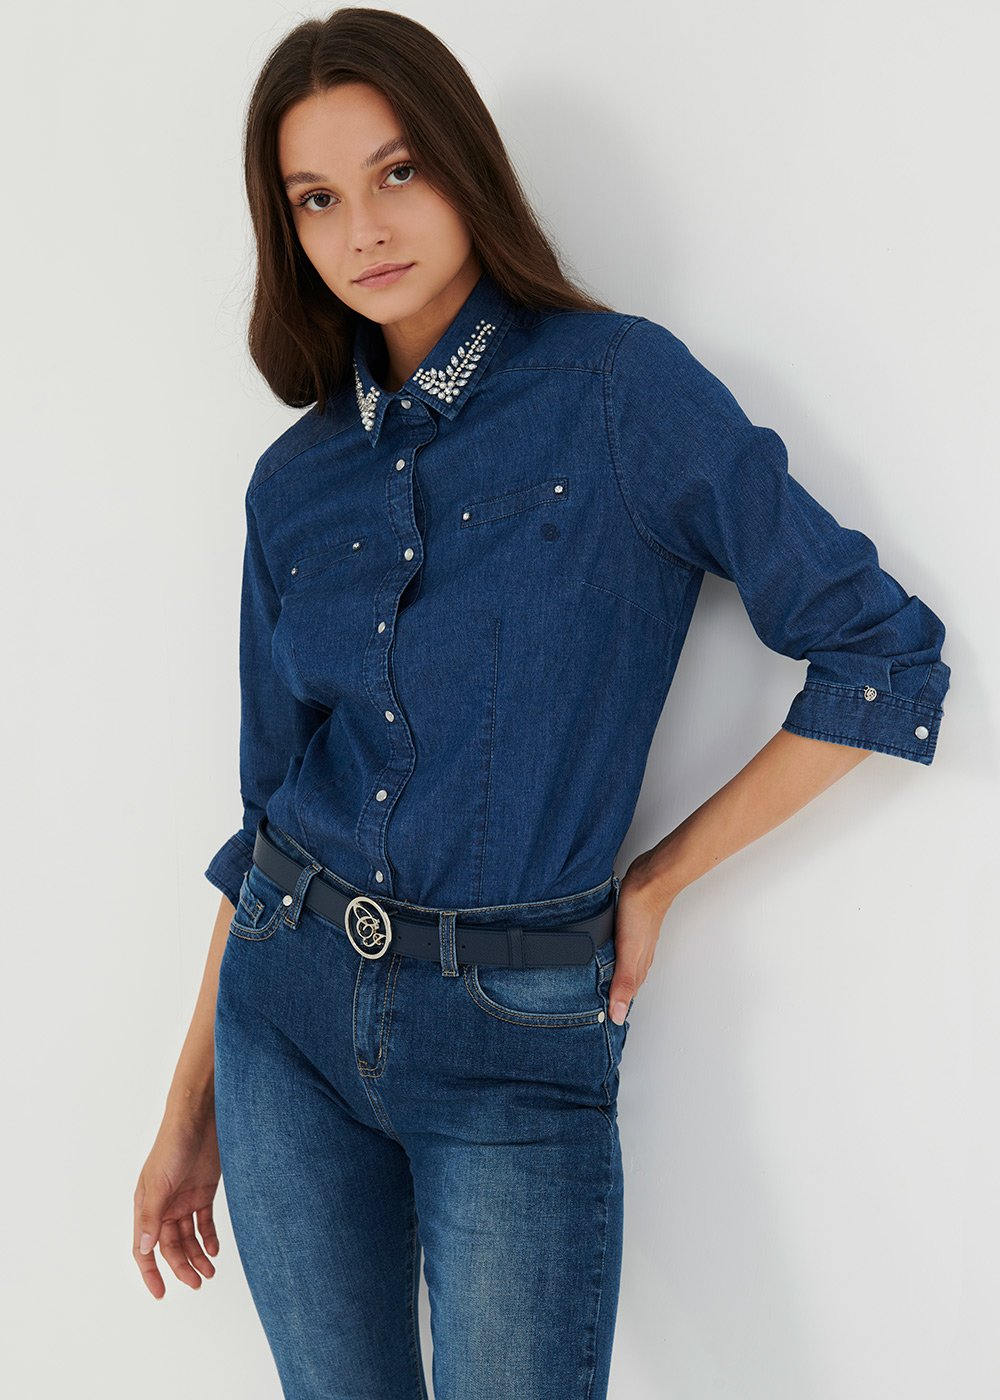 Denim shirt with rhinestones on the collar - Denim - Woman